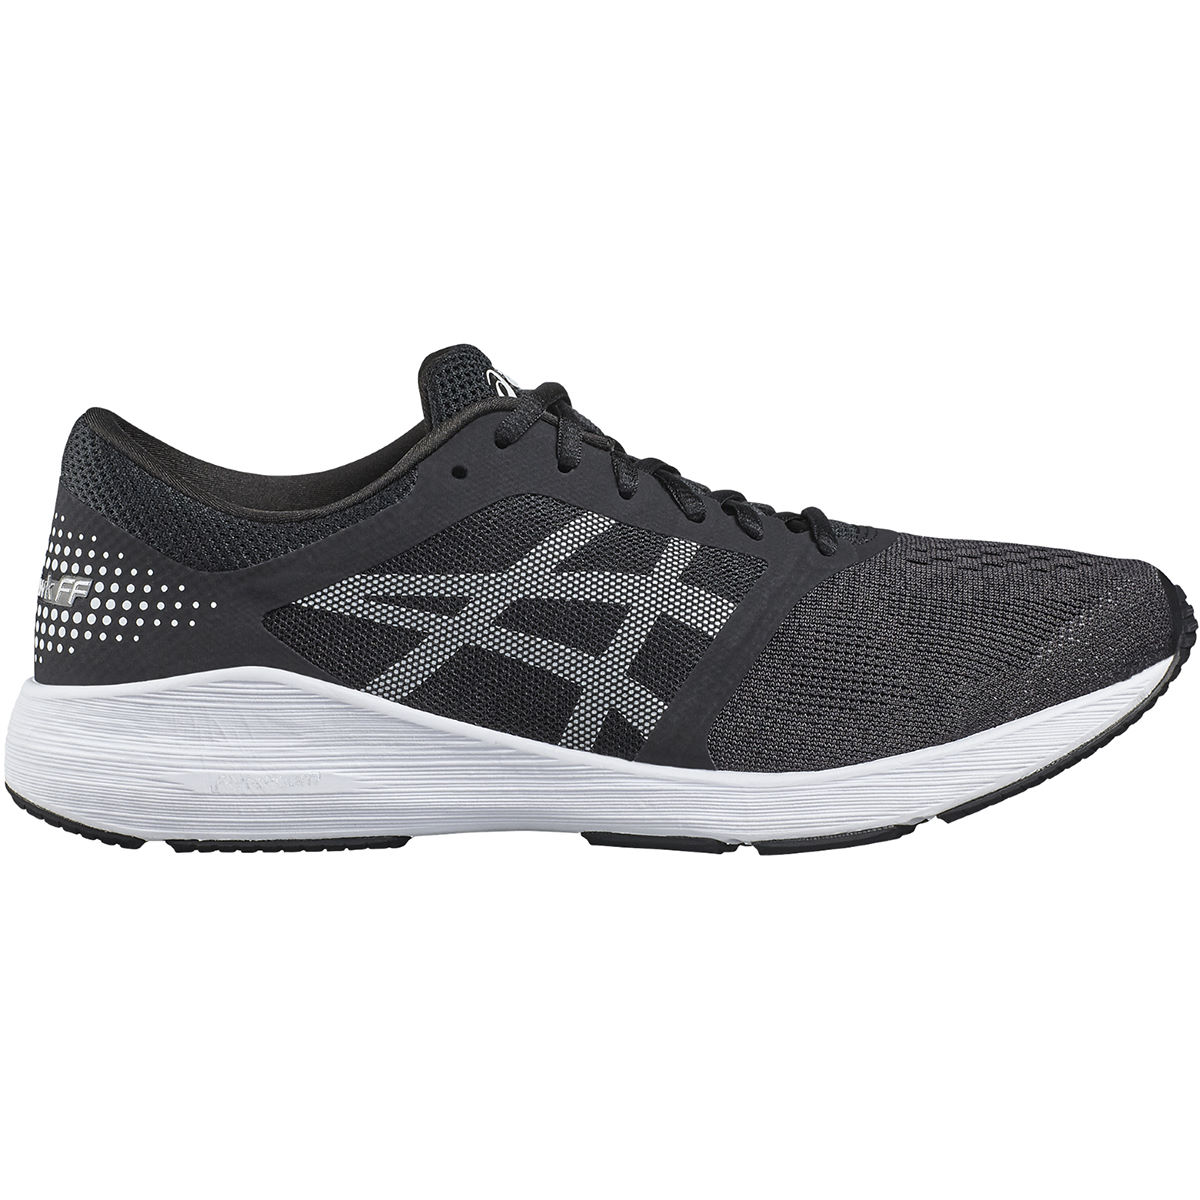 Chaussures Asics Roadhawk FF - UK 11 Black/White/Silver